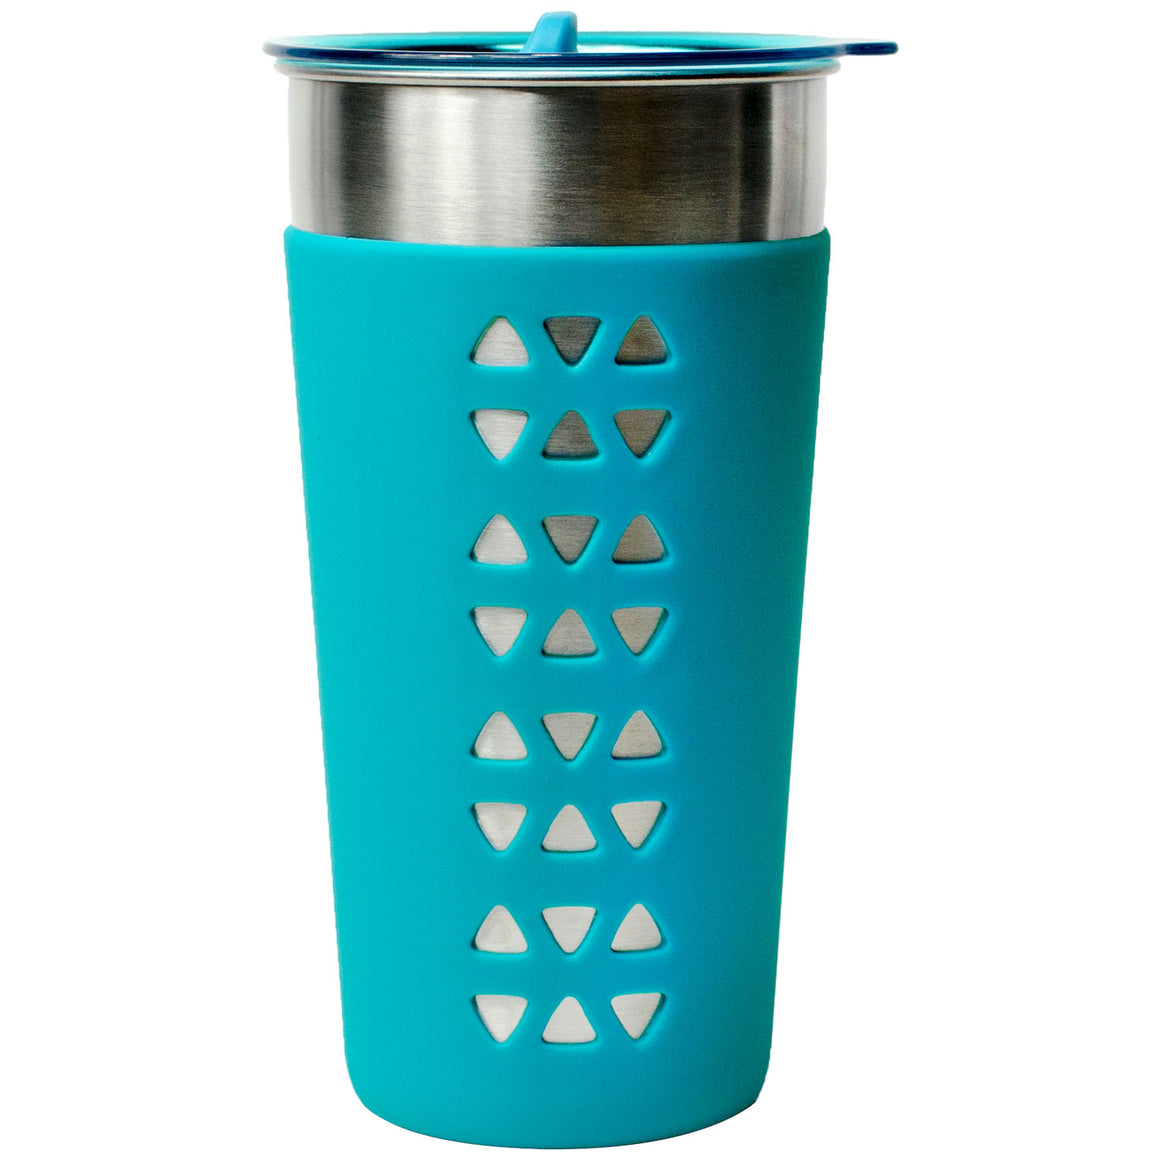 Purple Simplicity 26 Oz Tumbler With Sleeve at Cool Gear Tumblers,Stainless Steel